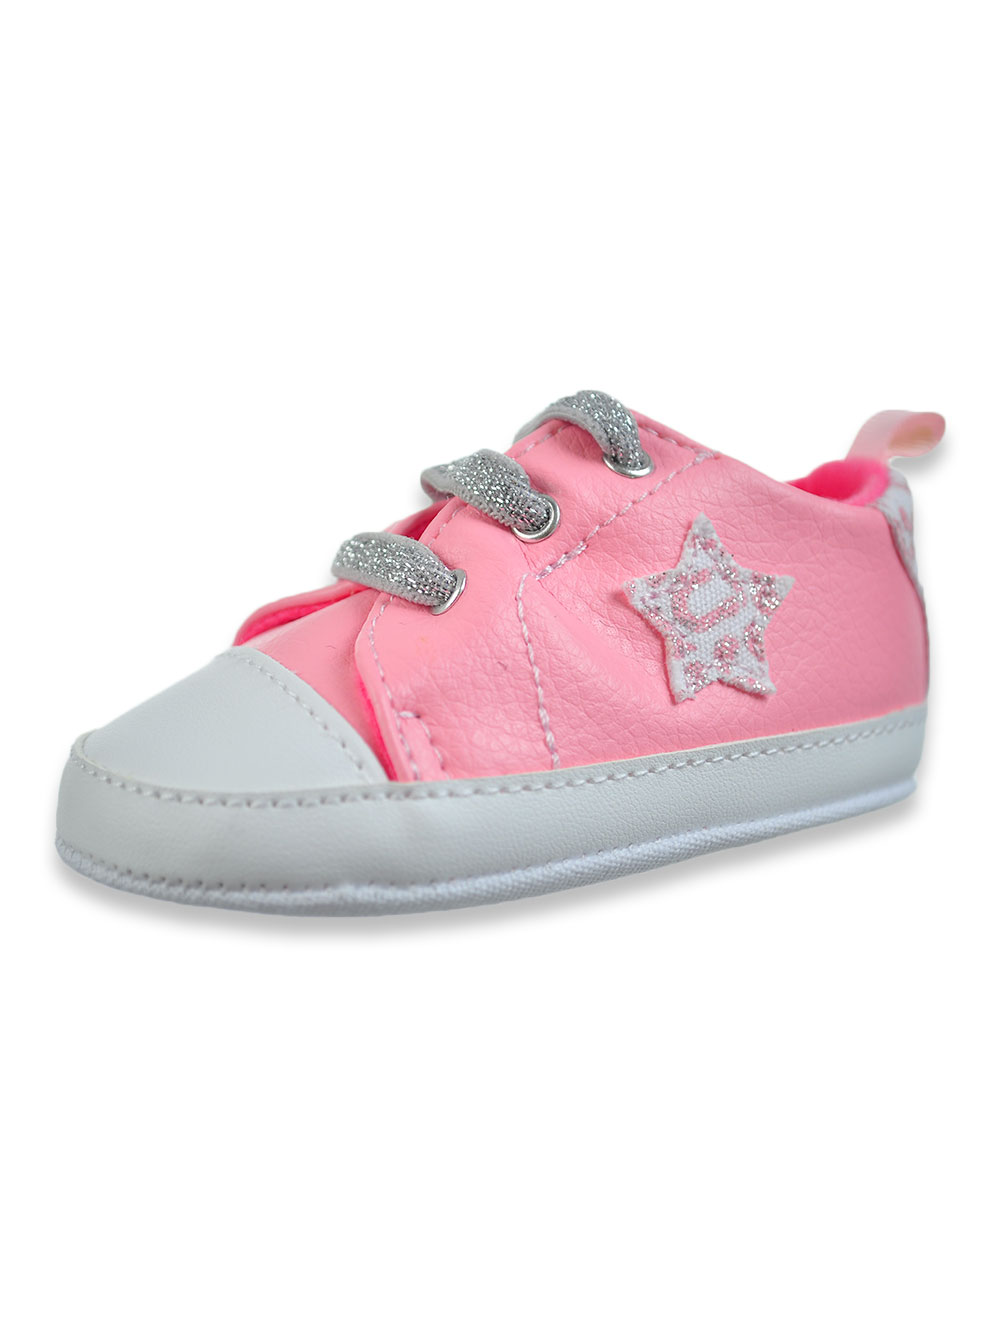 Girls Light Pink Sneakers and Booties